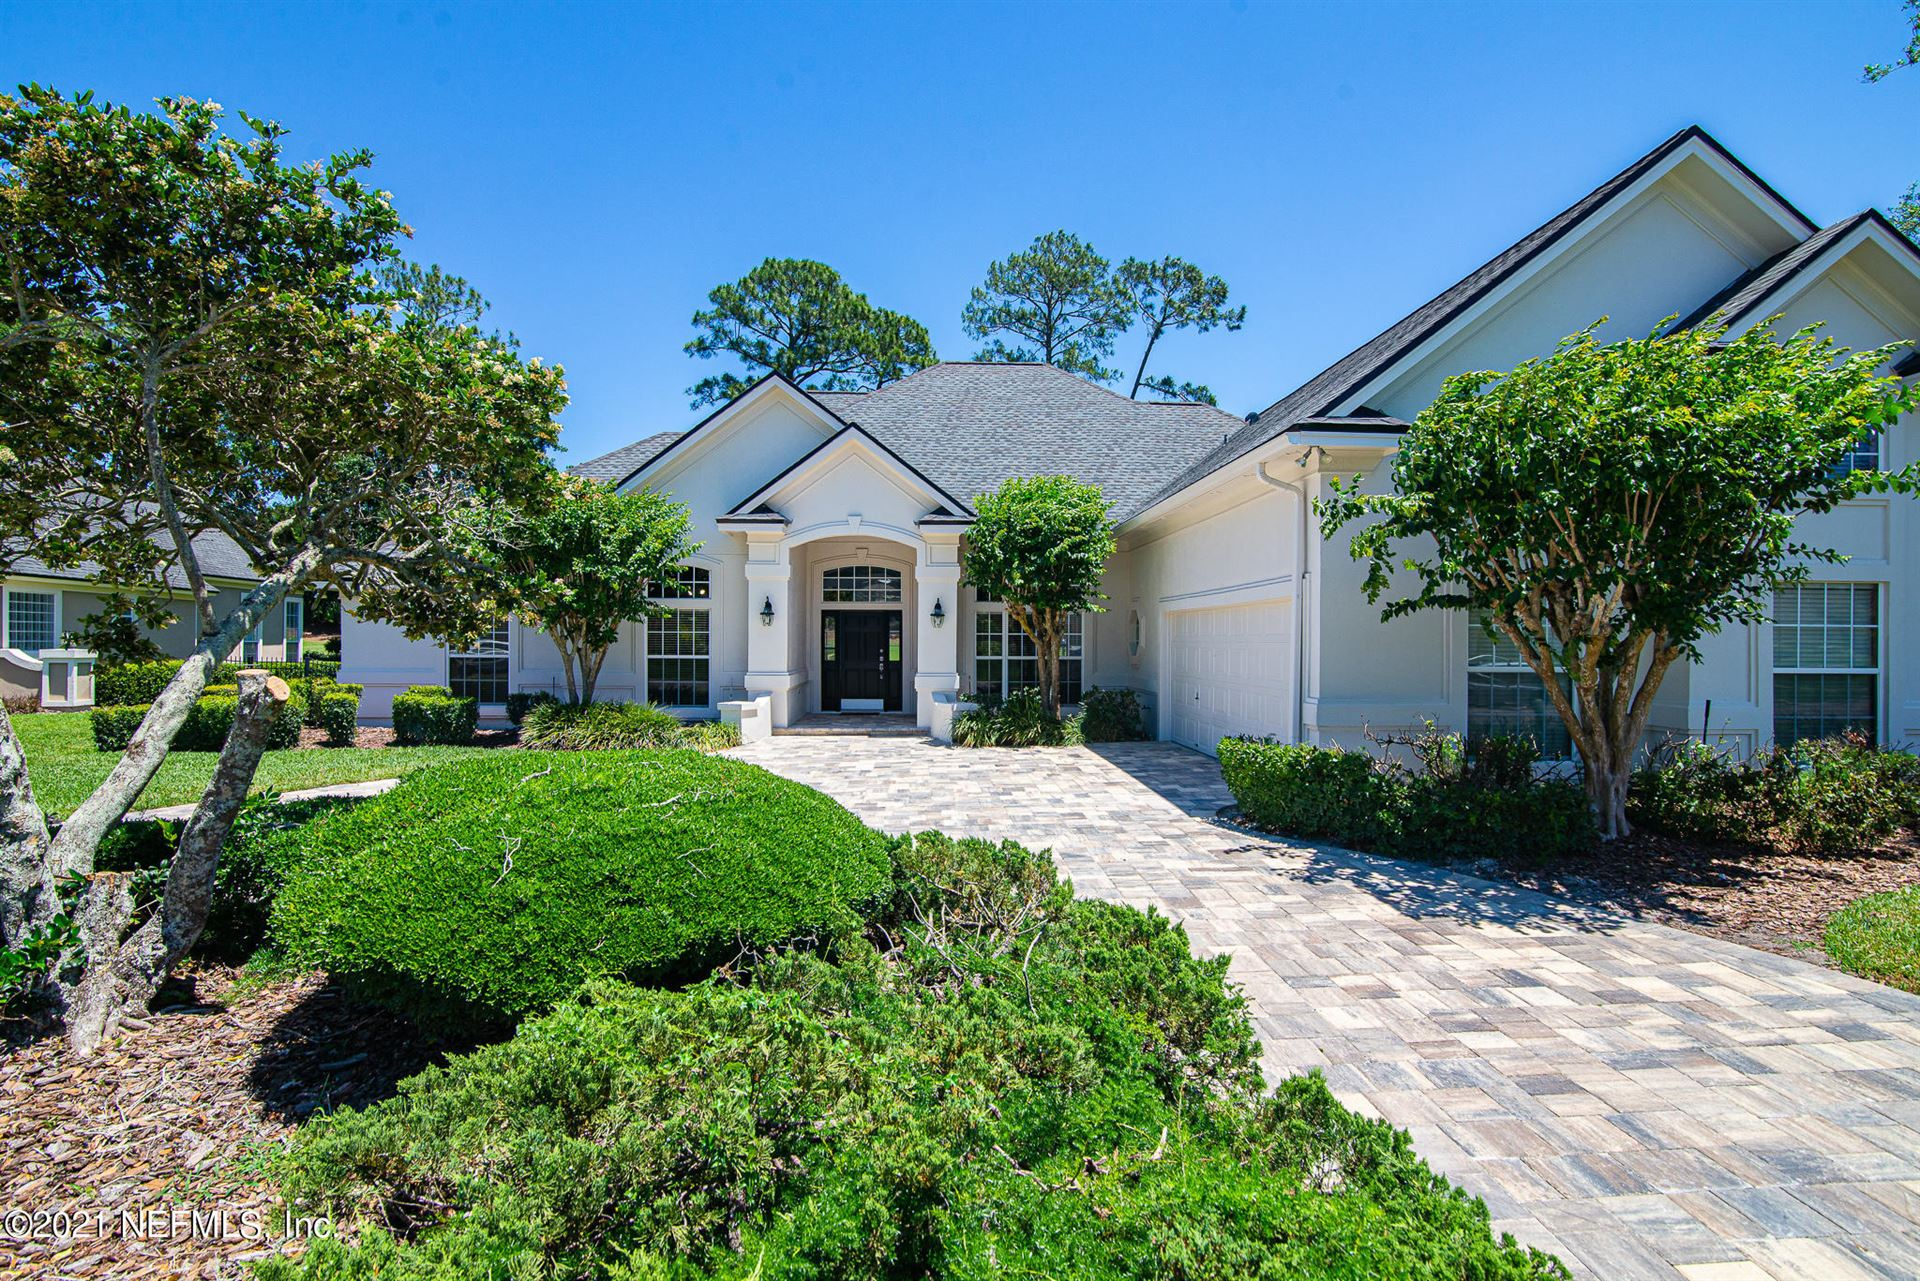 3845 CRICKET COVE RD E, Jacksonville, FL 32224 - MLS#: 1107249